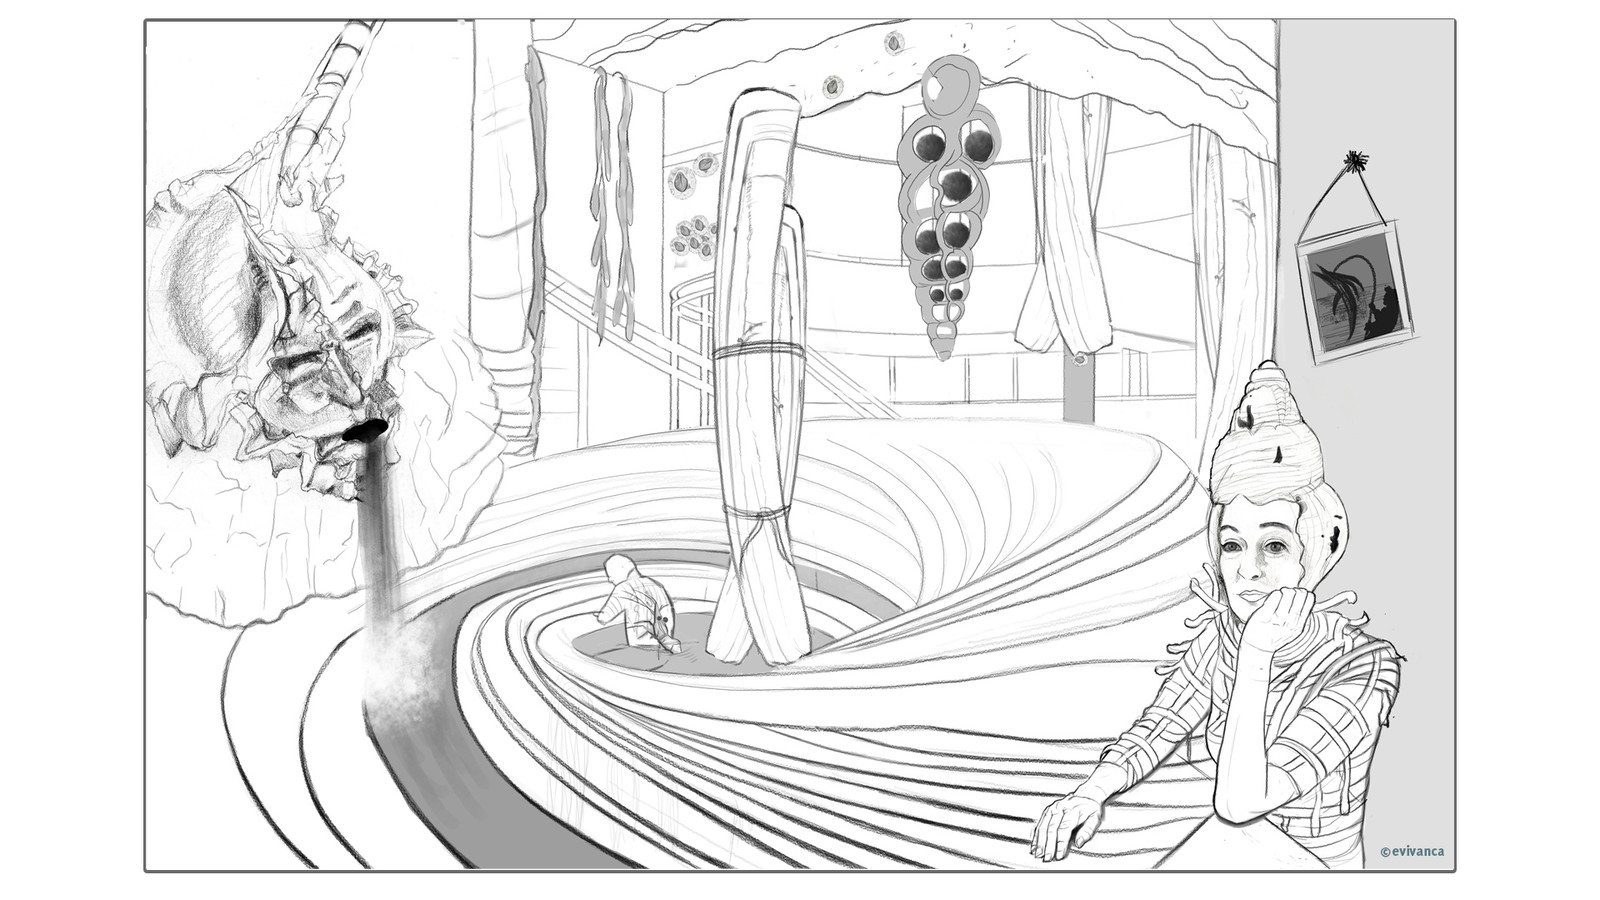 Study for an interior design for my Calusa shell city - a bathhouse - picture 2 frame2